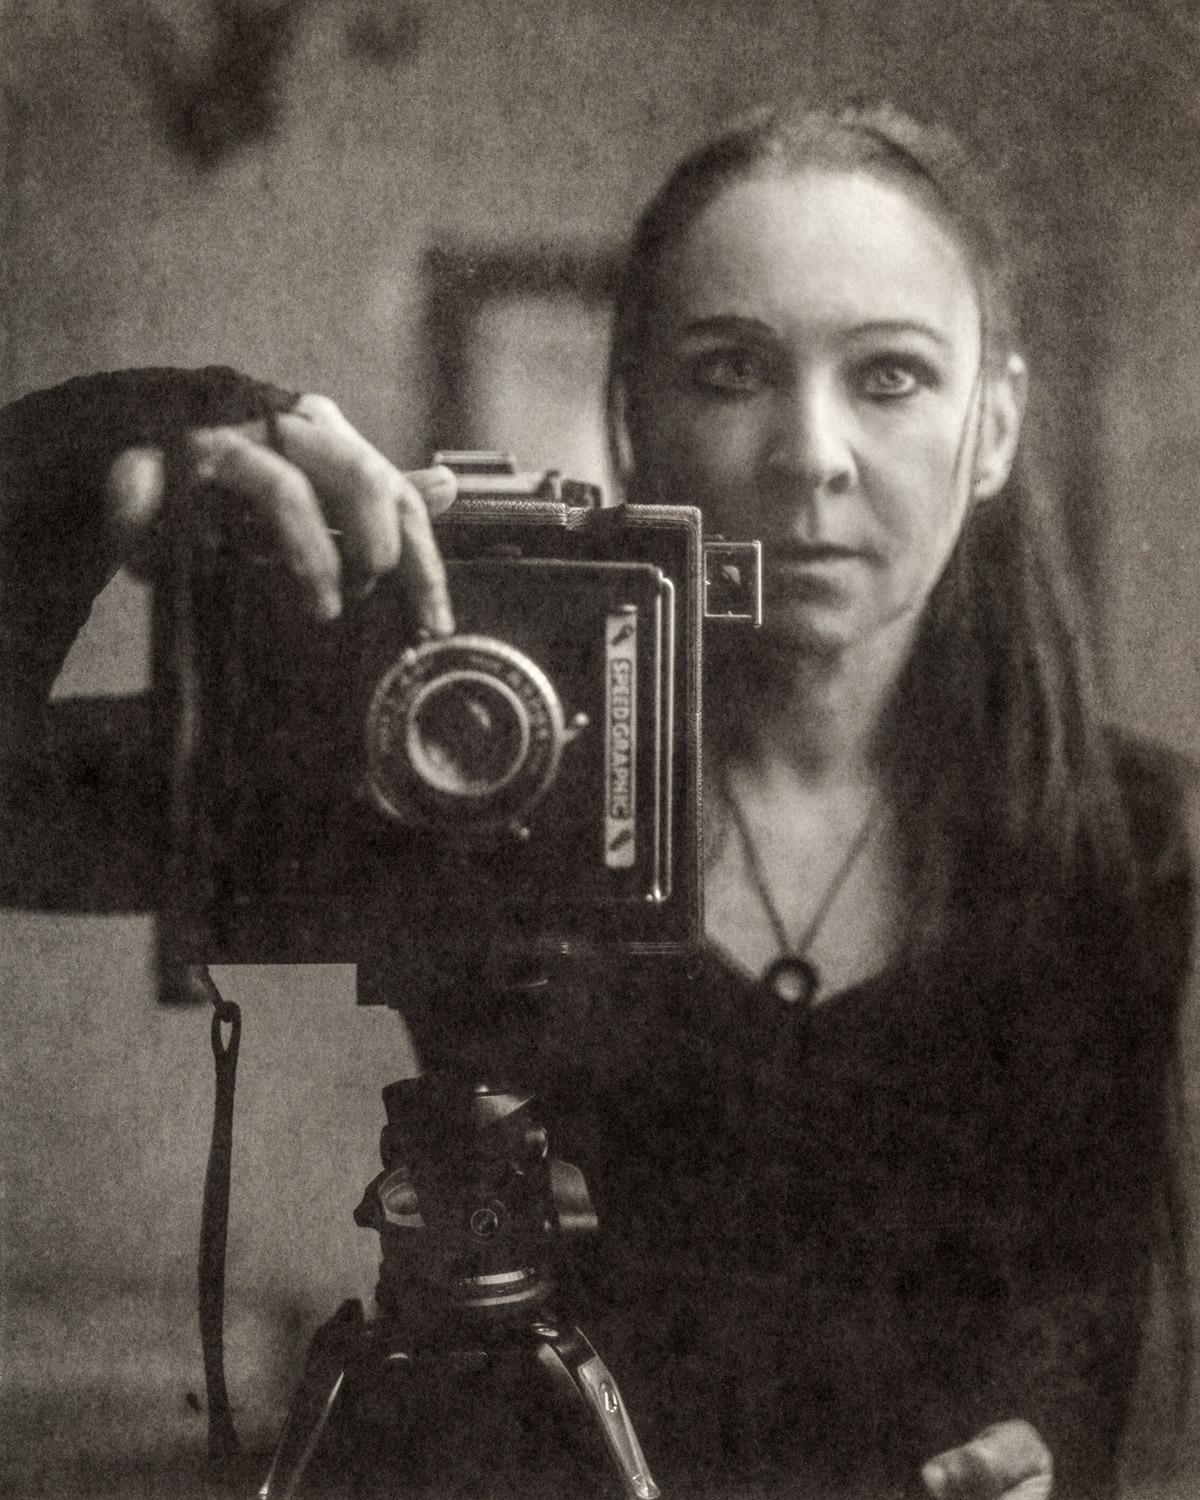 It's me! Self-portrait in mirror with 4x5 camera on paper negative